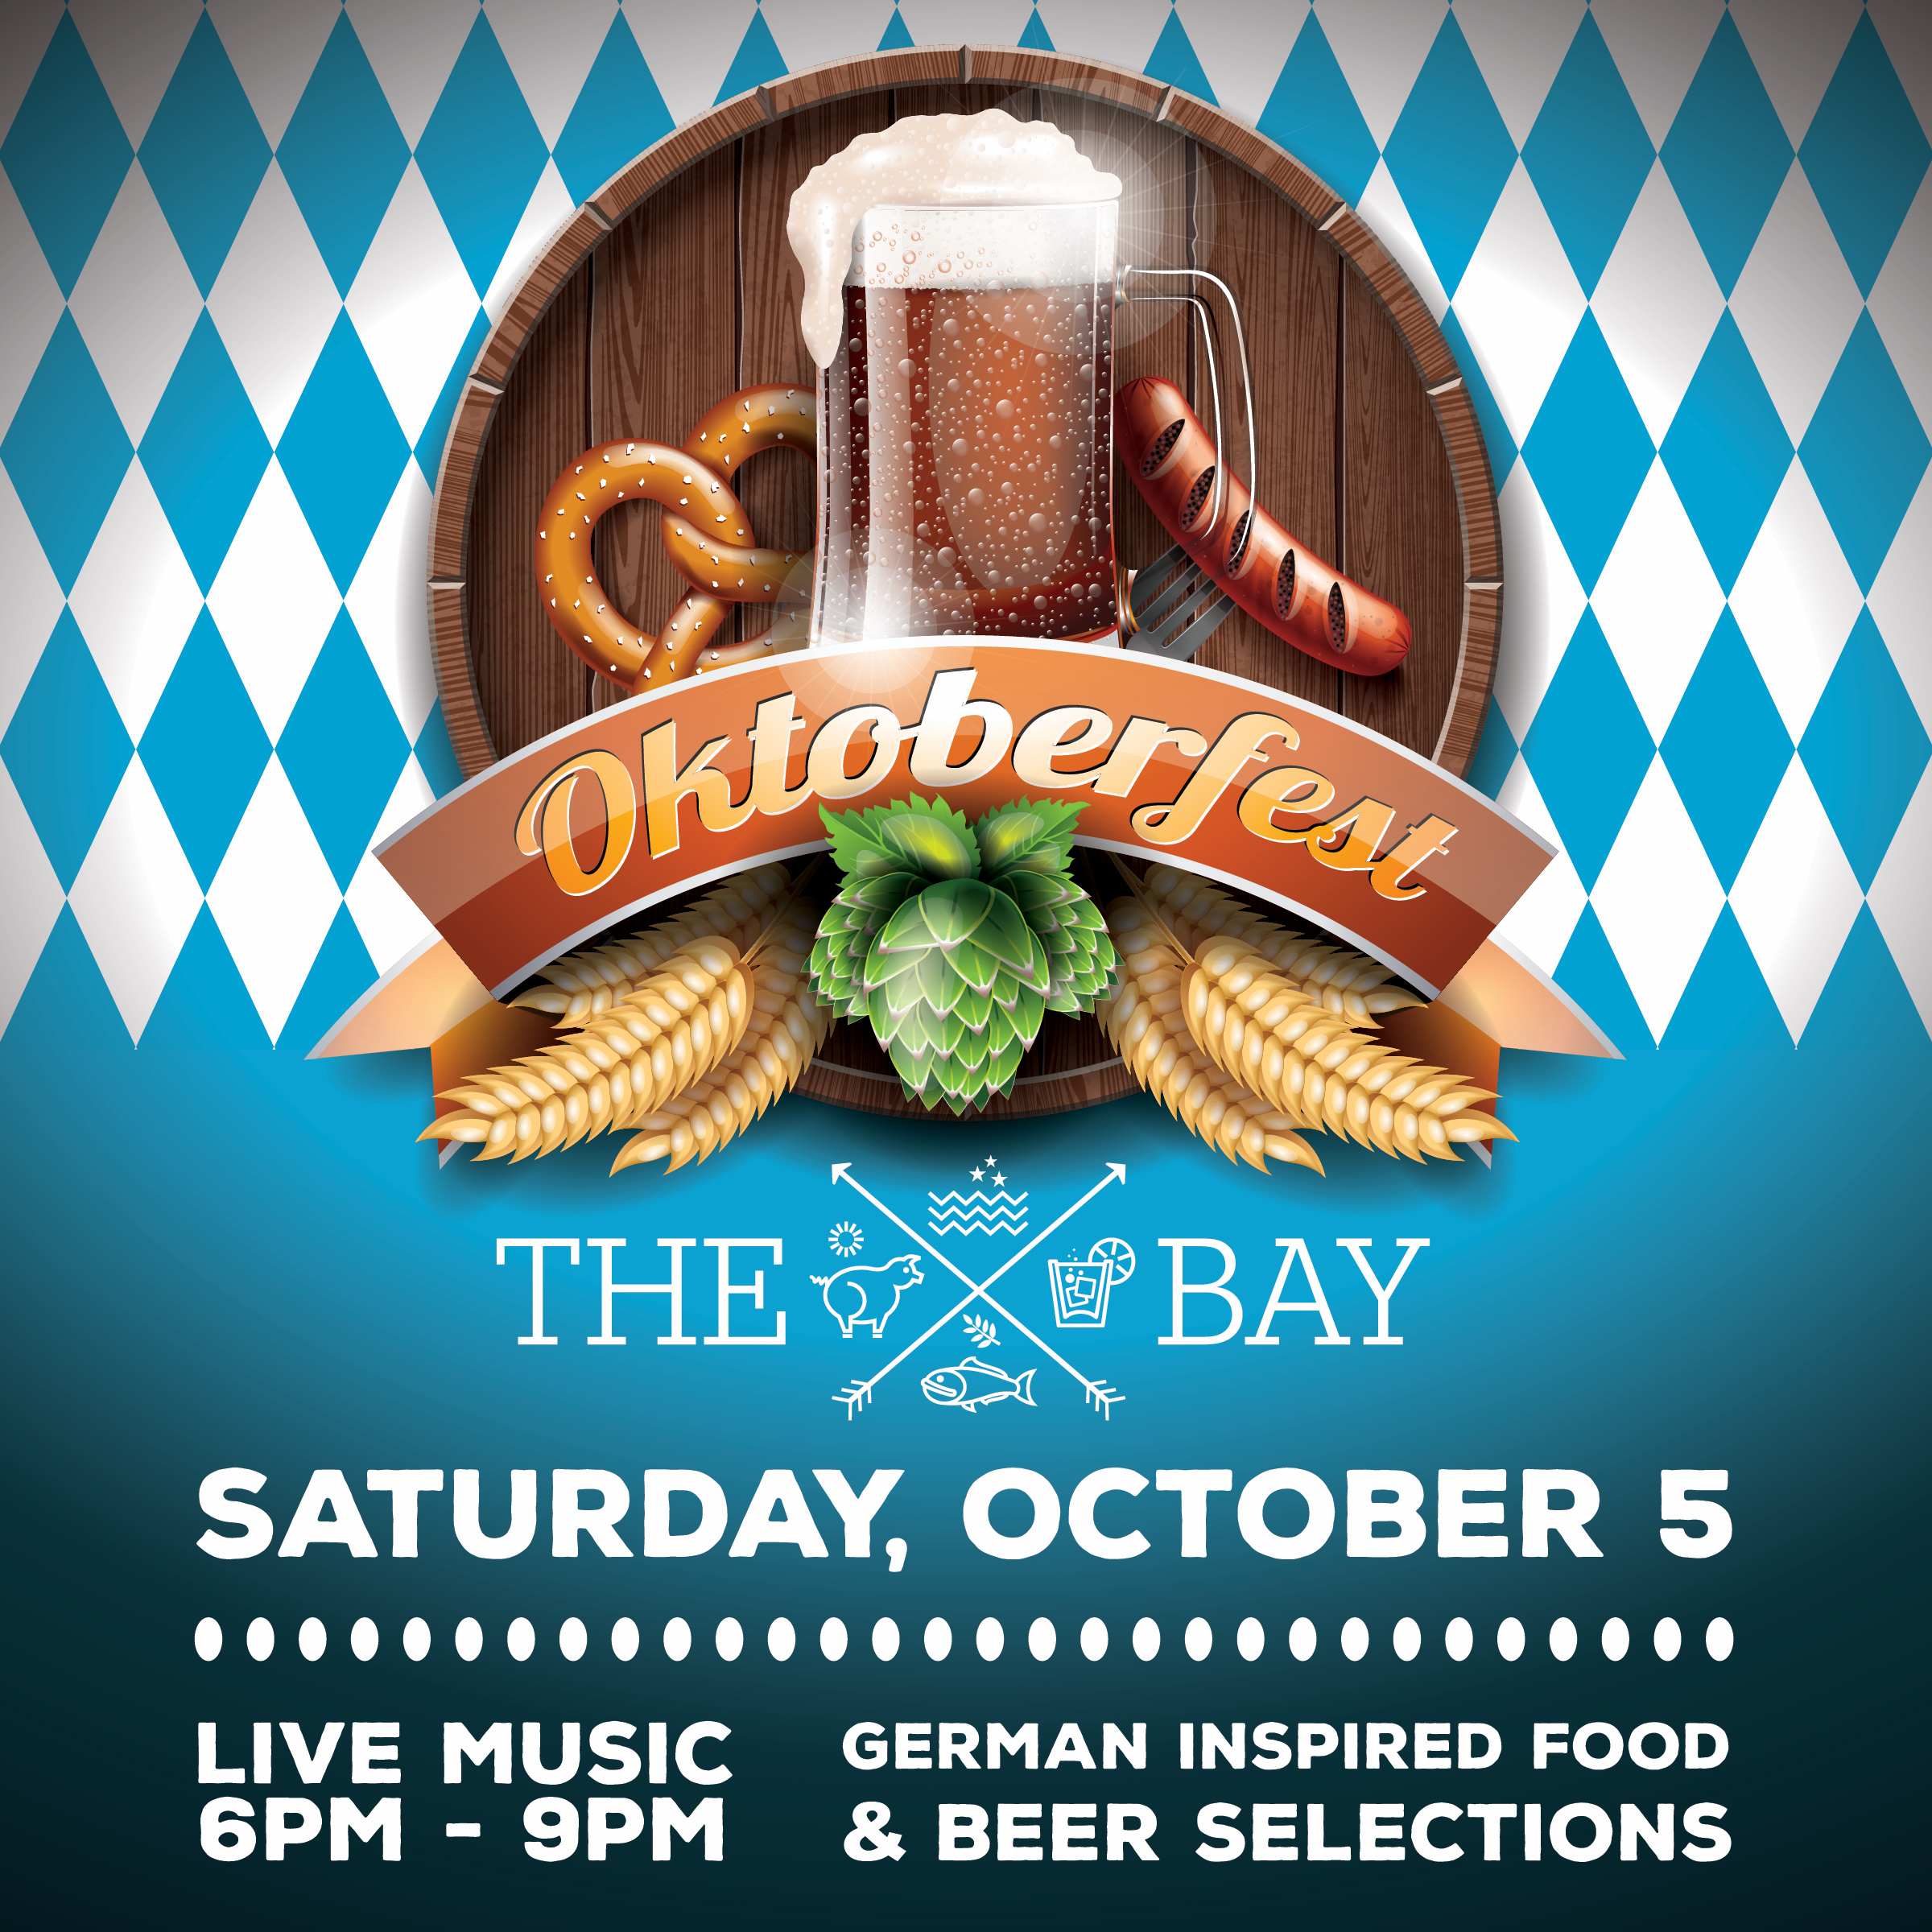 Oktoberfest at The Bay Promises to be an Authentic German Event